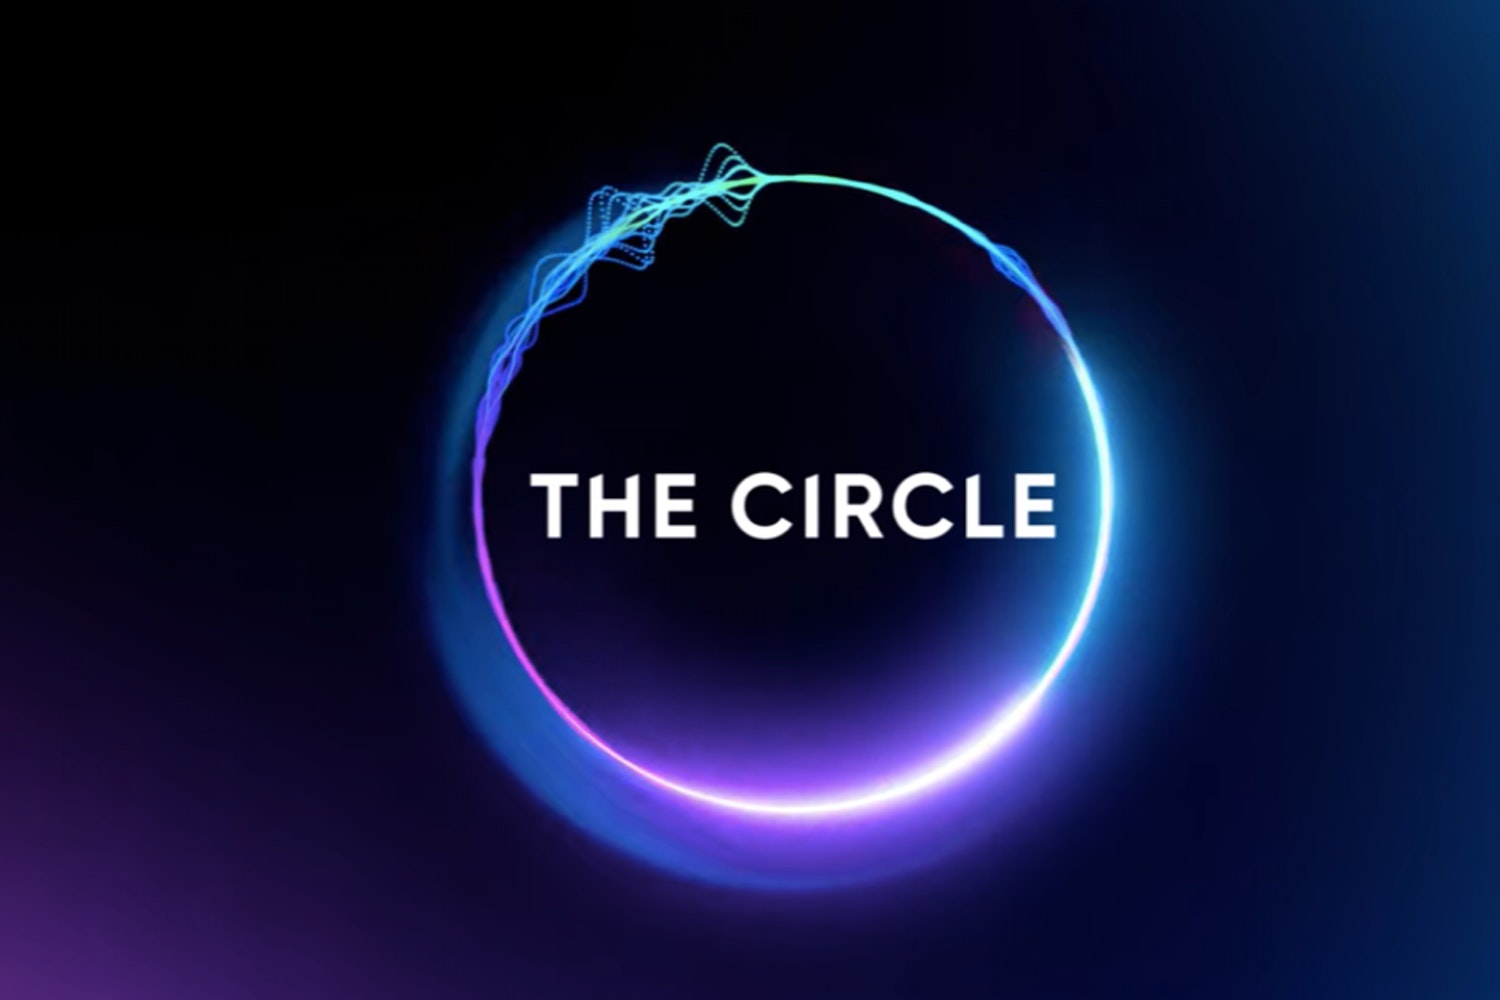 Cover Image for Netflix Confirms New Seasons of The Circle